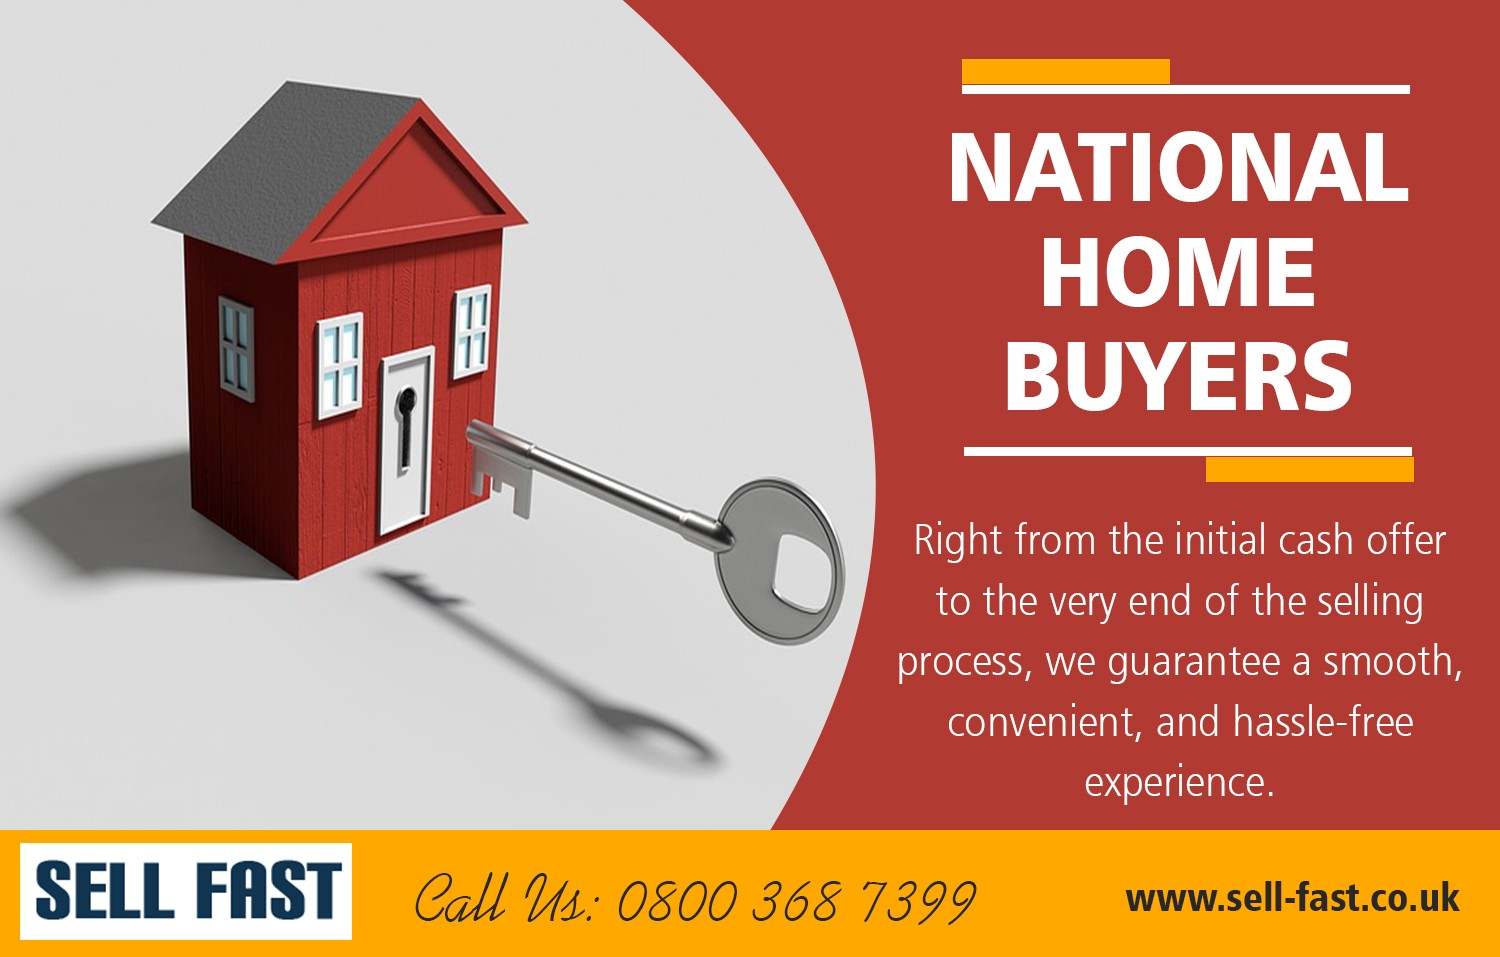 National Home Buyers – Sell Fast – Medium